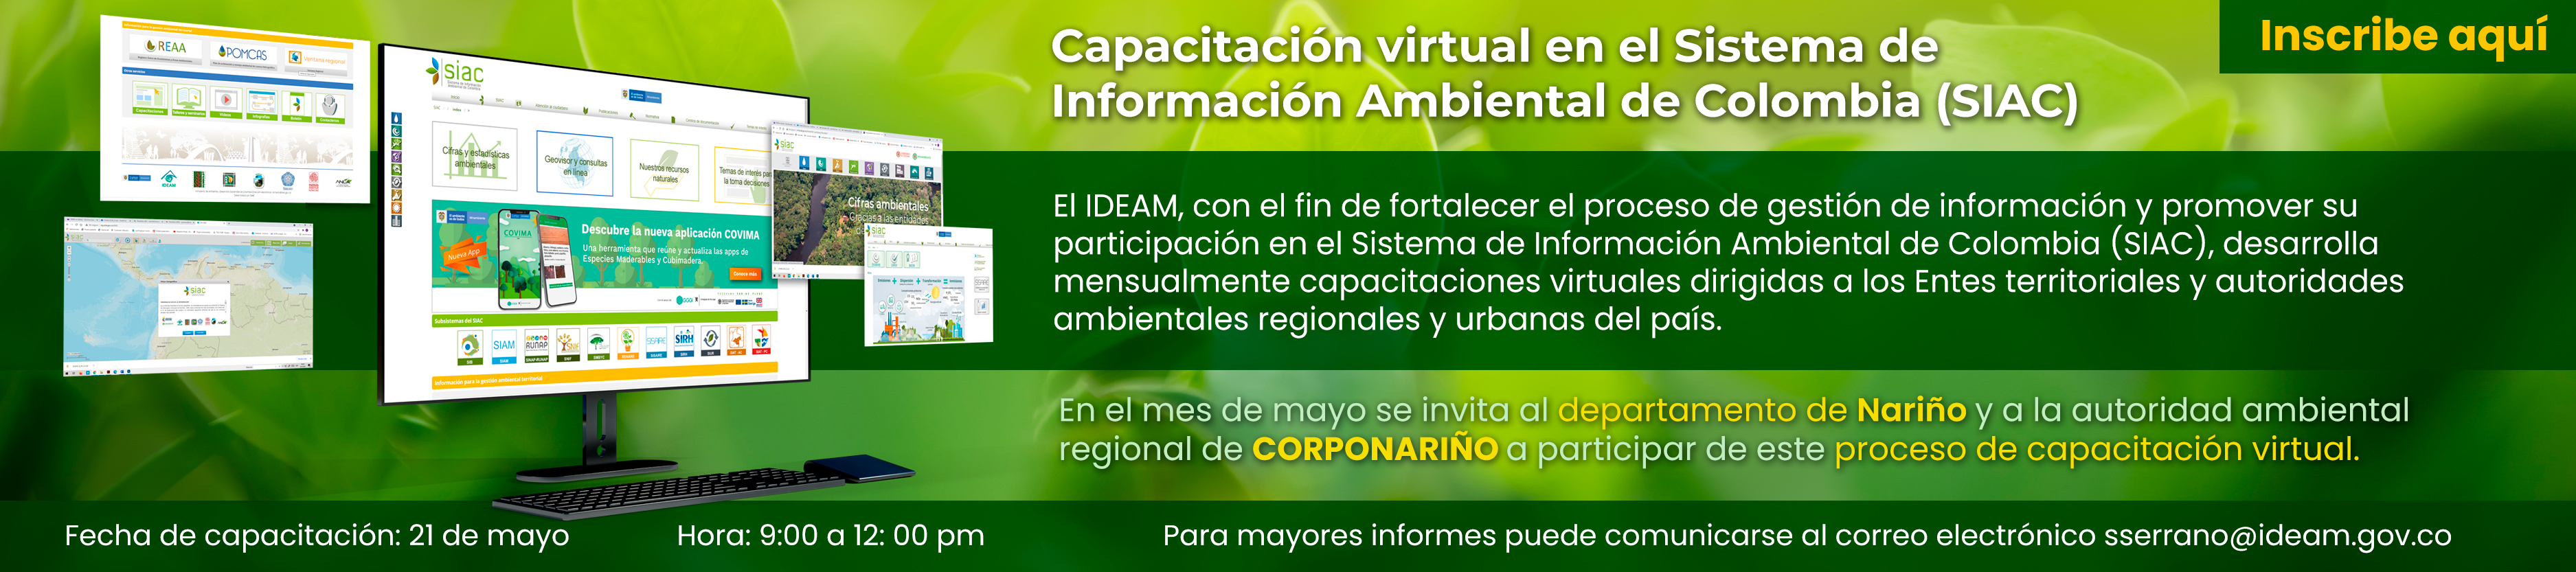 Capacitación virtual SIAC